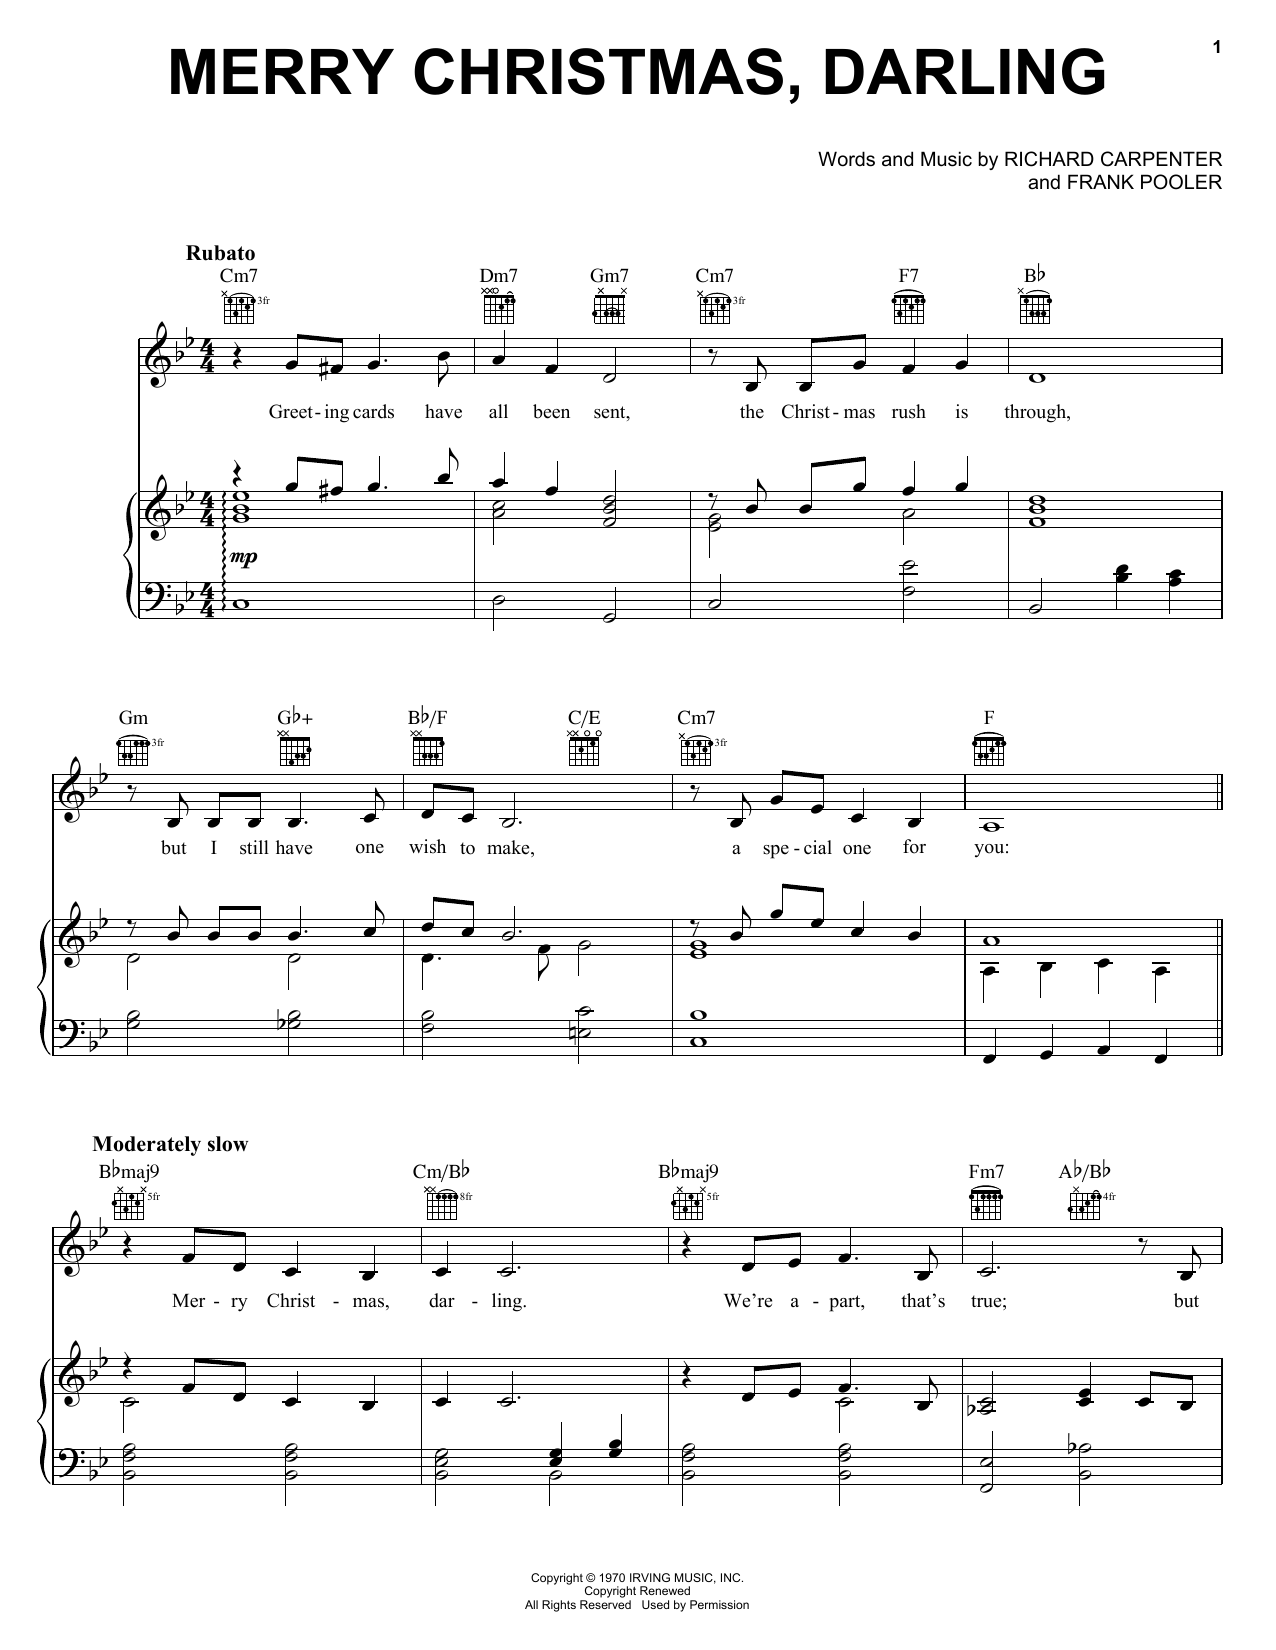 Carpenters Merry Christmas, Darling sheet music notes and chords